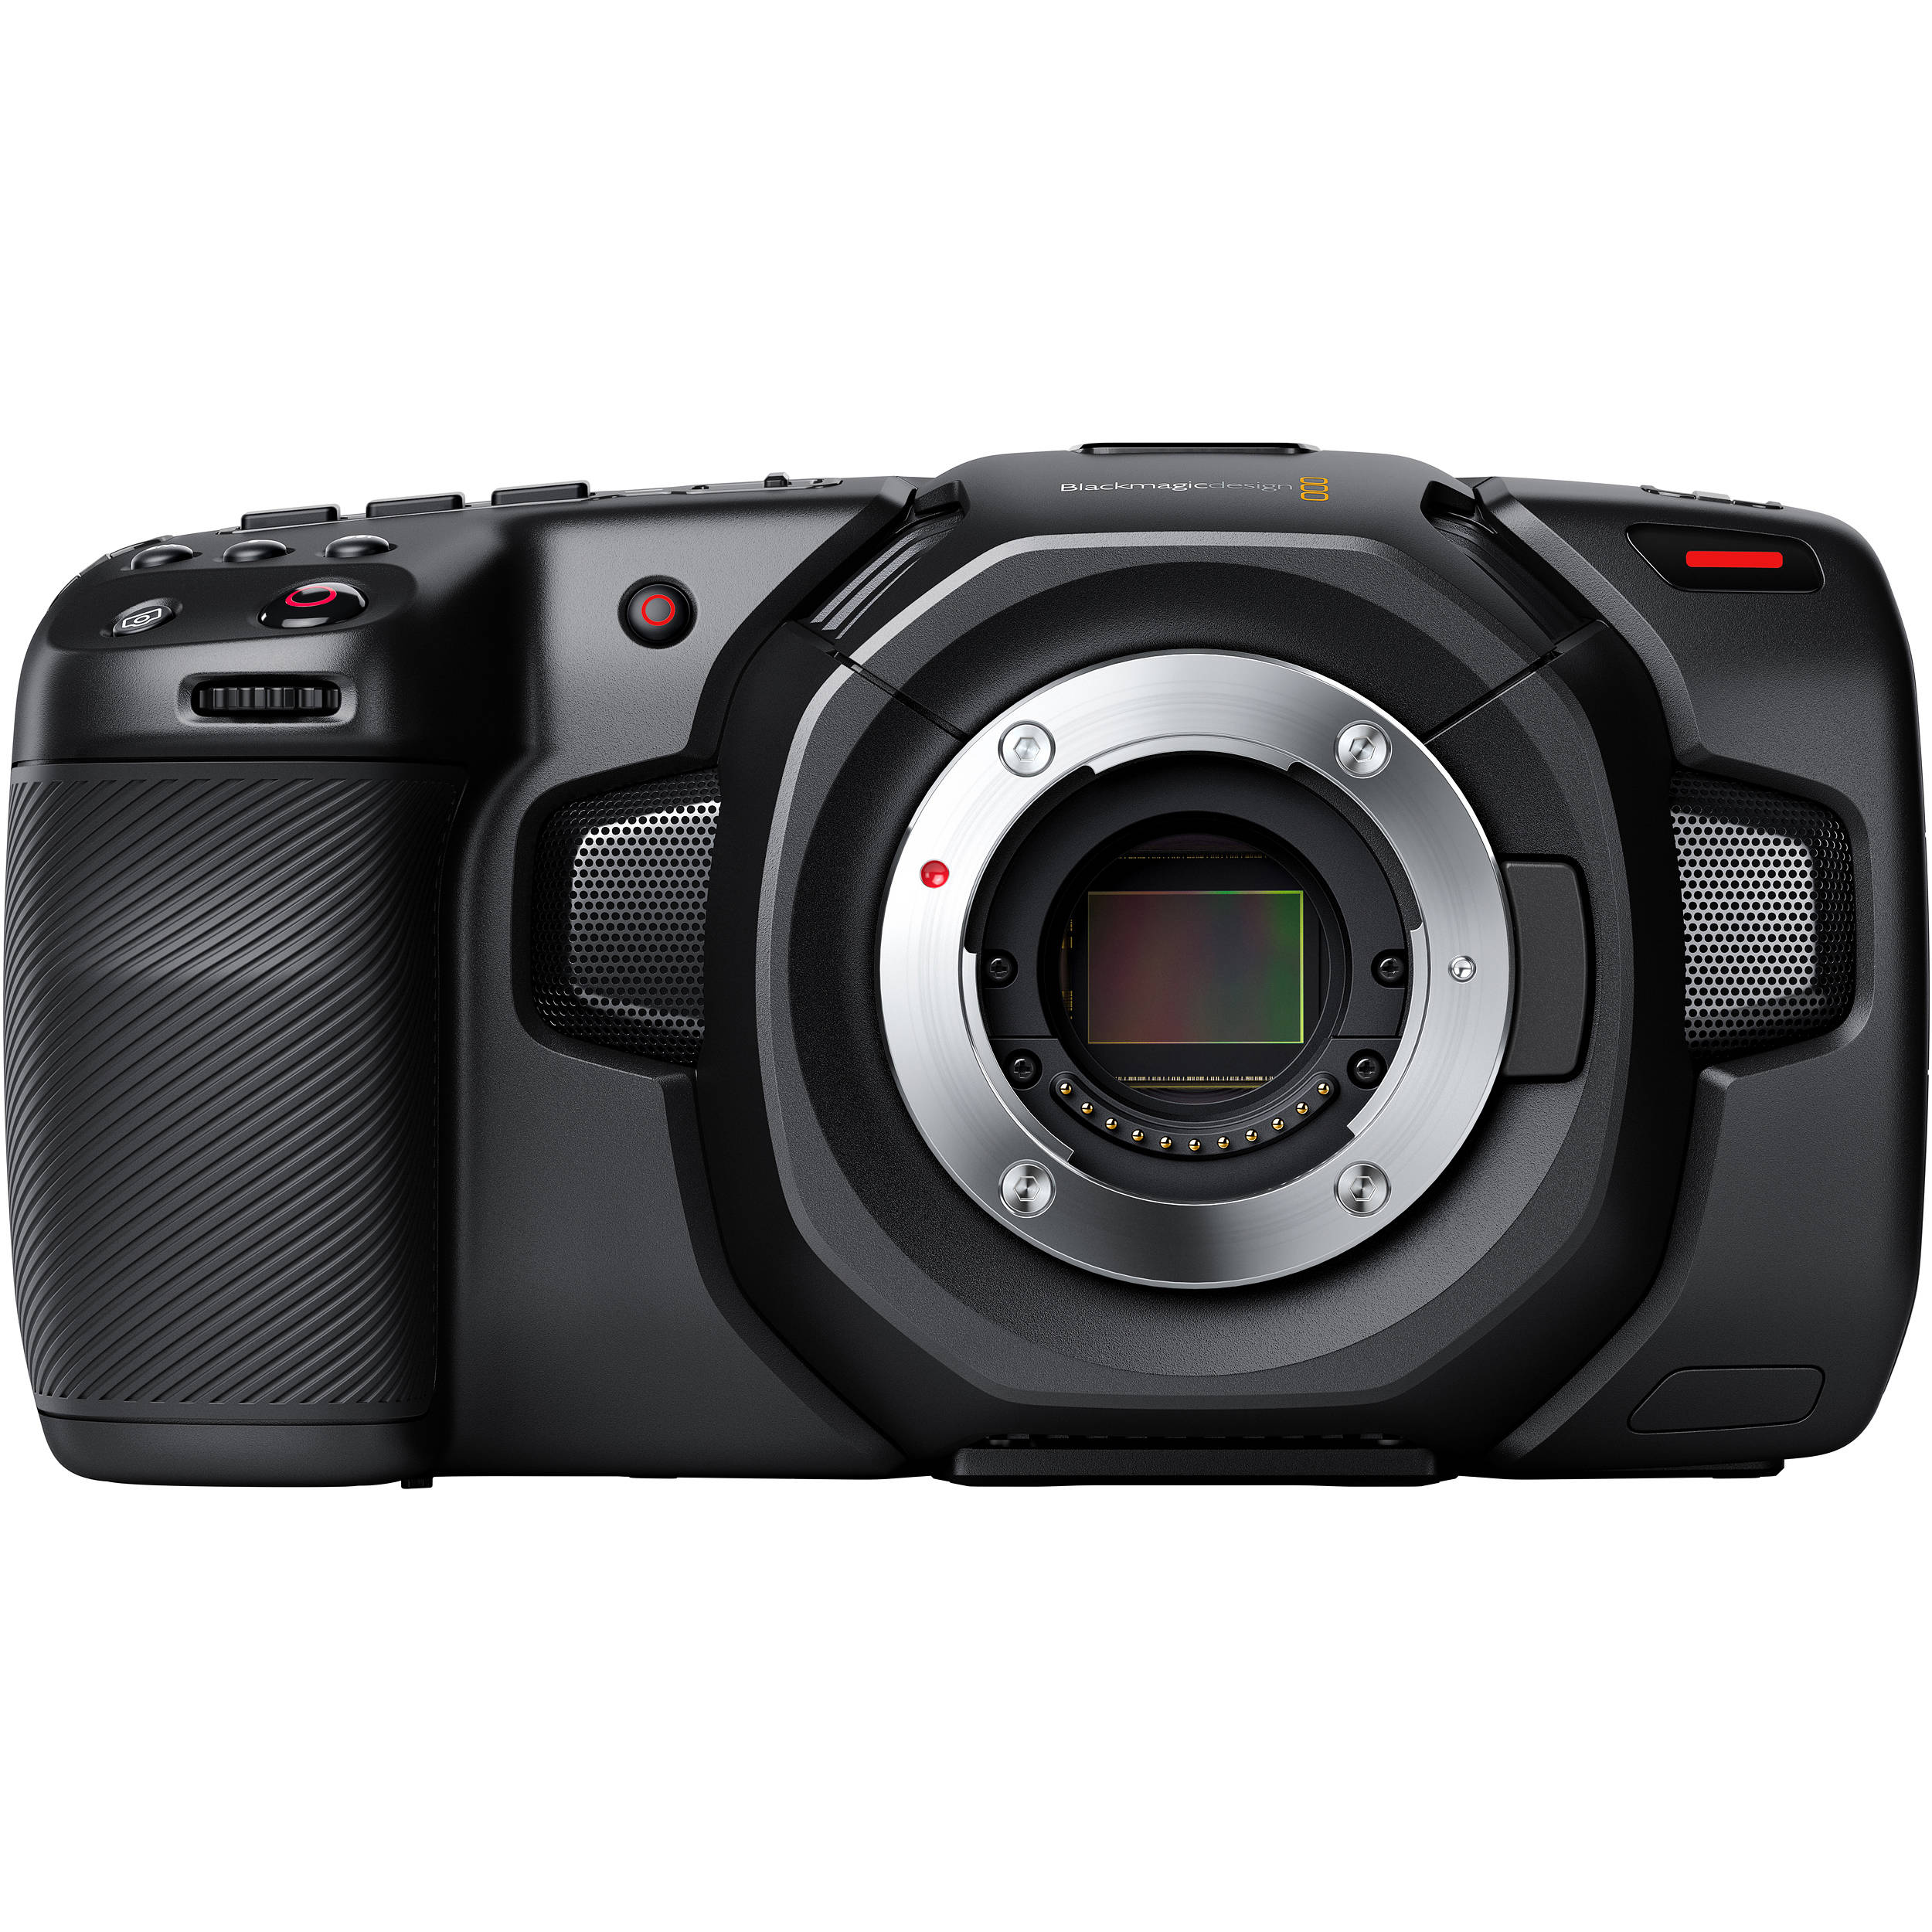 BLACKMAGIC DESIGN CINEMA CAMERA WINDOWS 7 64BIT DRIVER DOWNLOAD